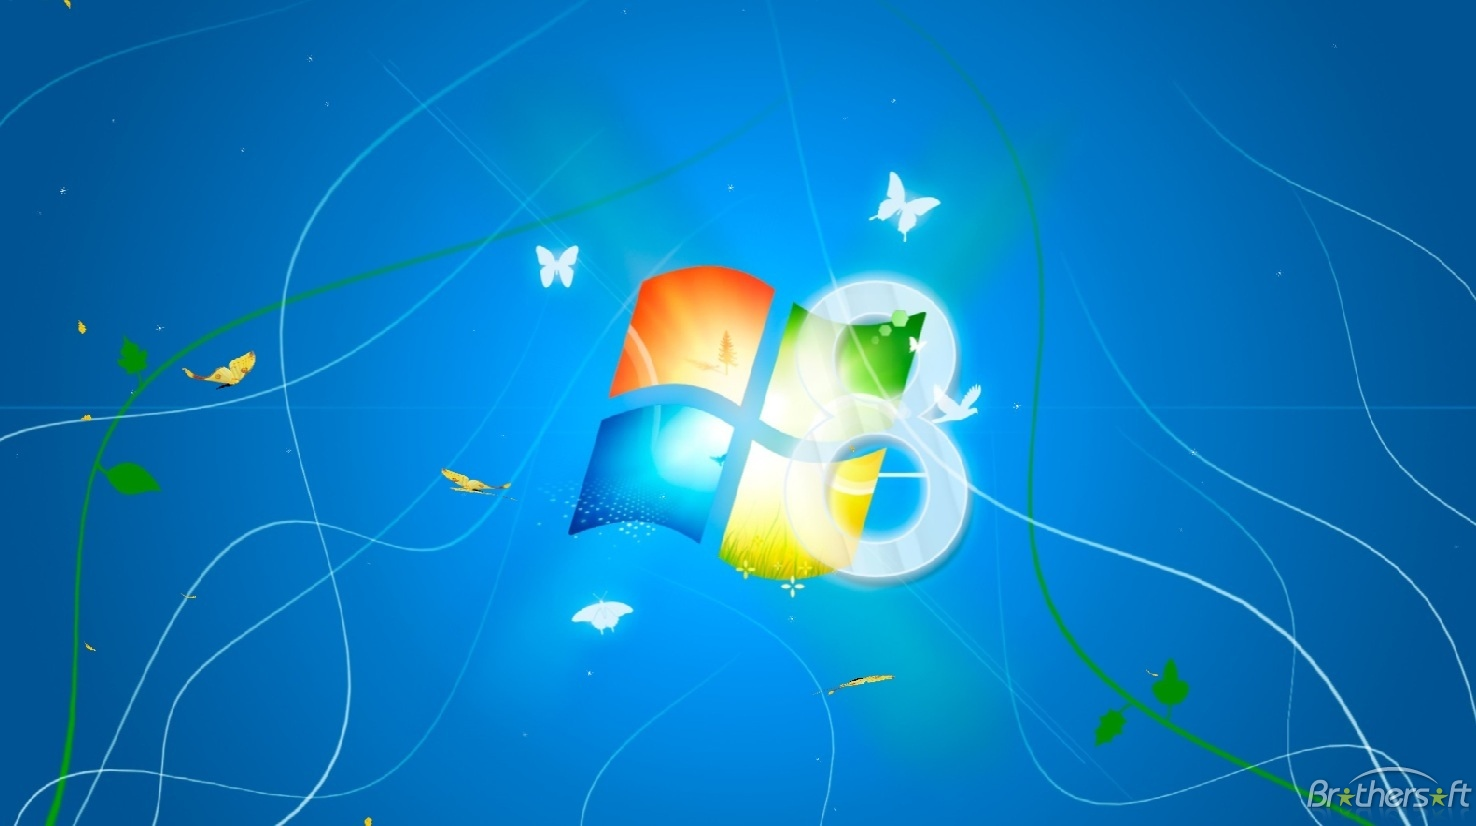 Free Download Windows 8 Light Animated Wallpaper Windows 8